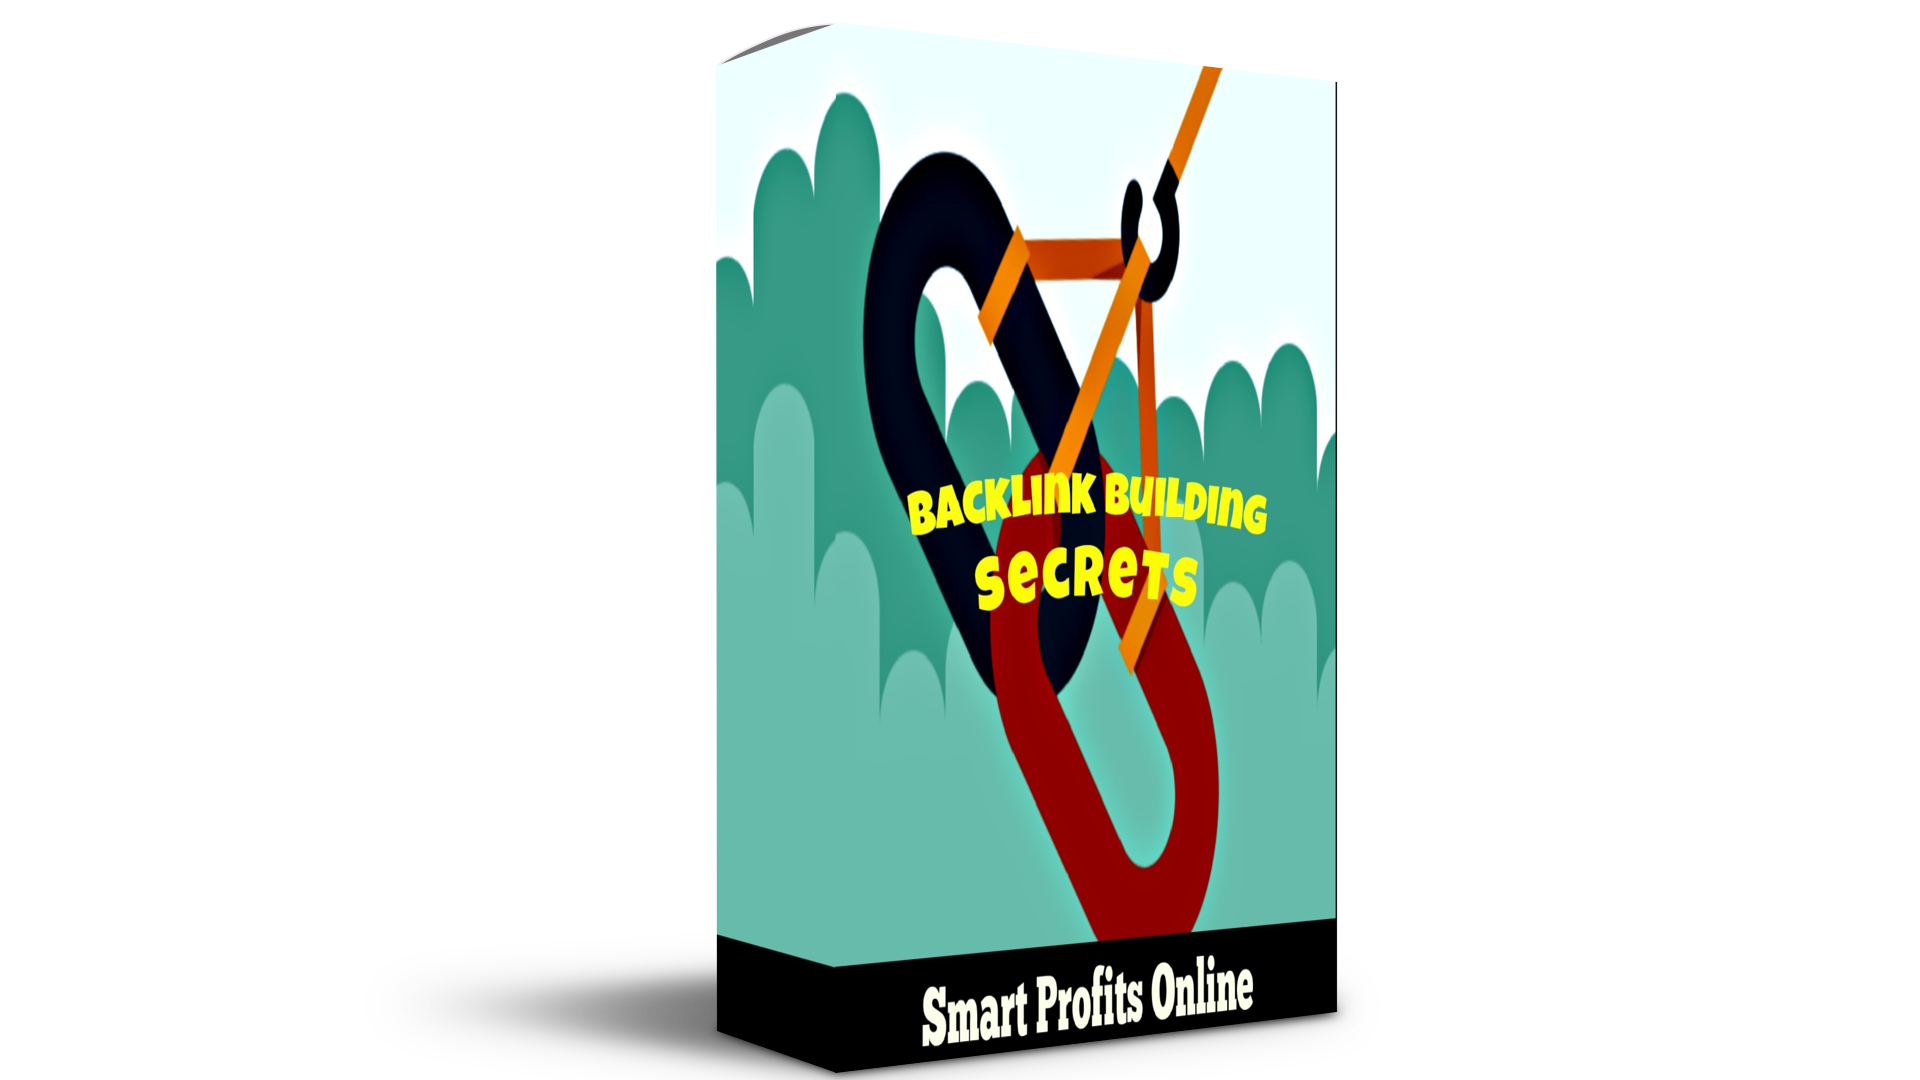 Ultimate blogging blueprint review how to blog and make money daily inside the ultimate blogging blueprint tommy briefly covered how to build backlinks this will complete that crucial part of the ranking process giving you malvernweather Gallery